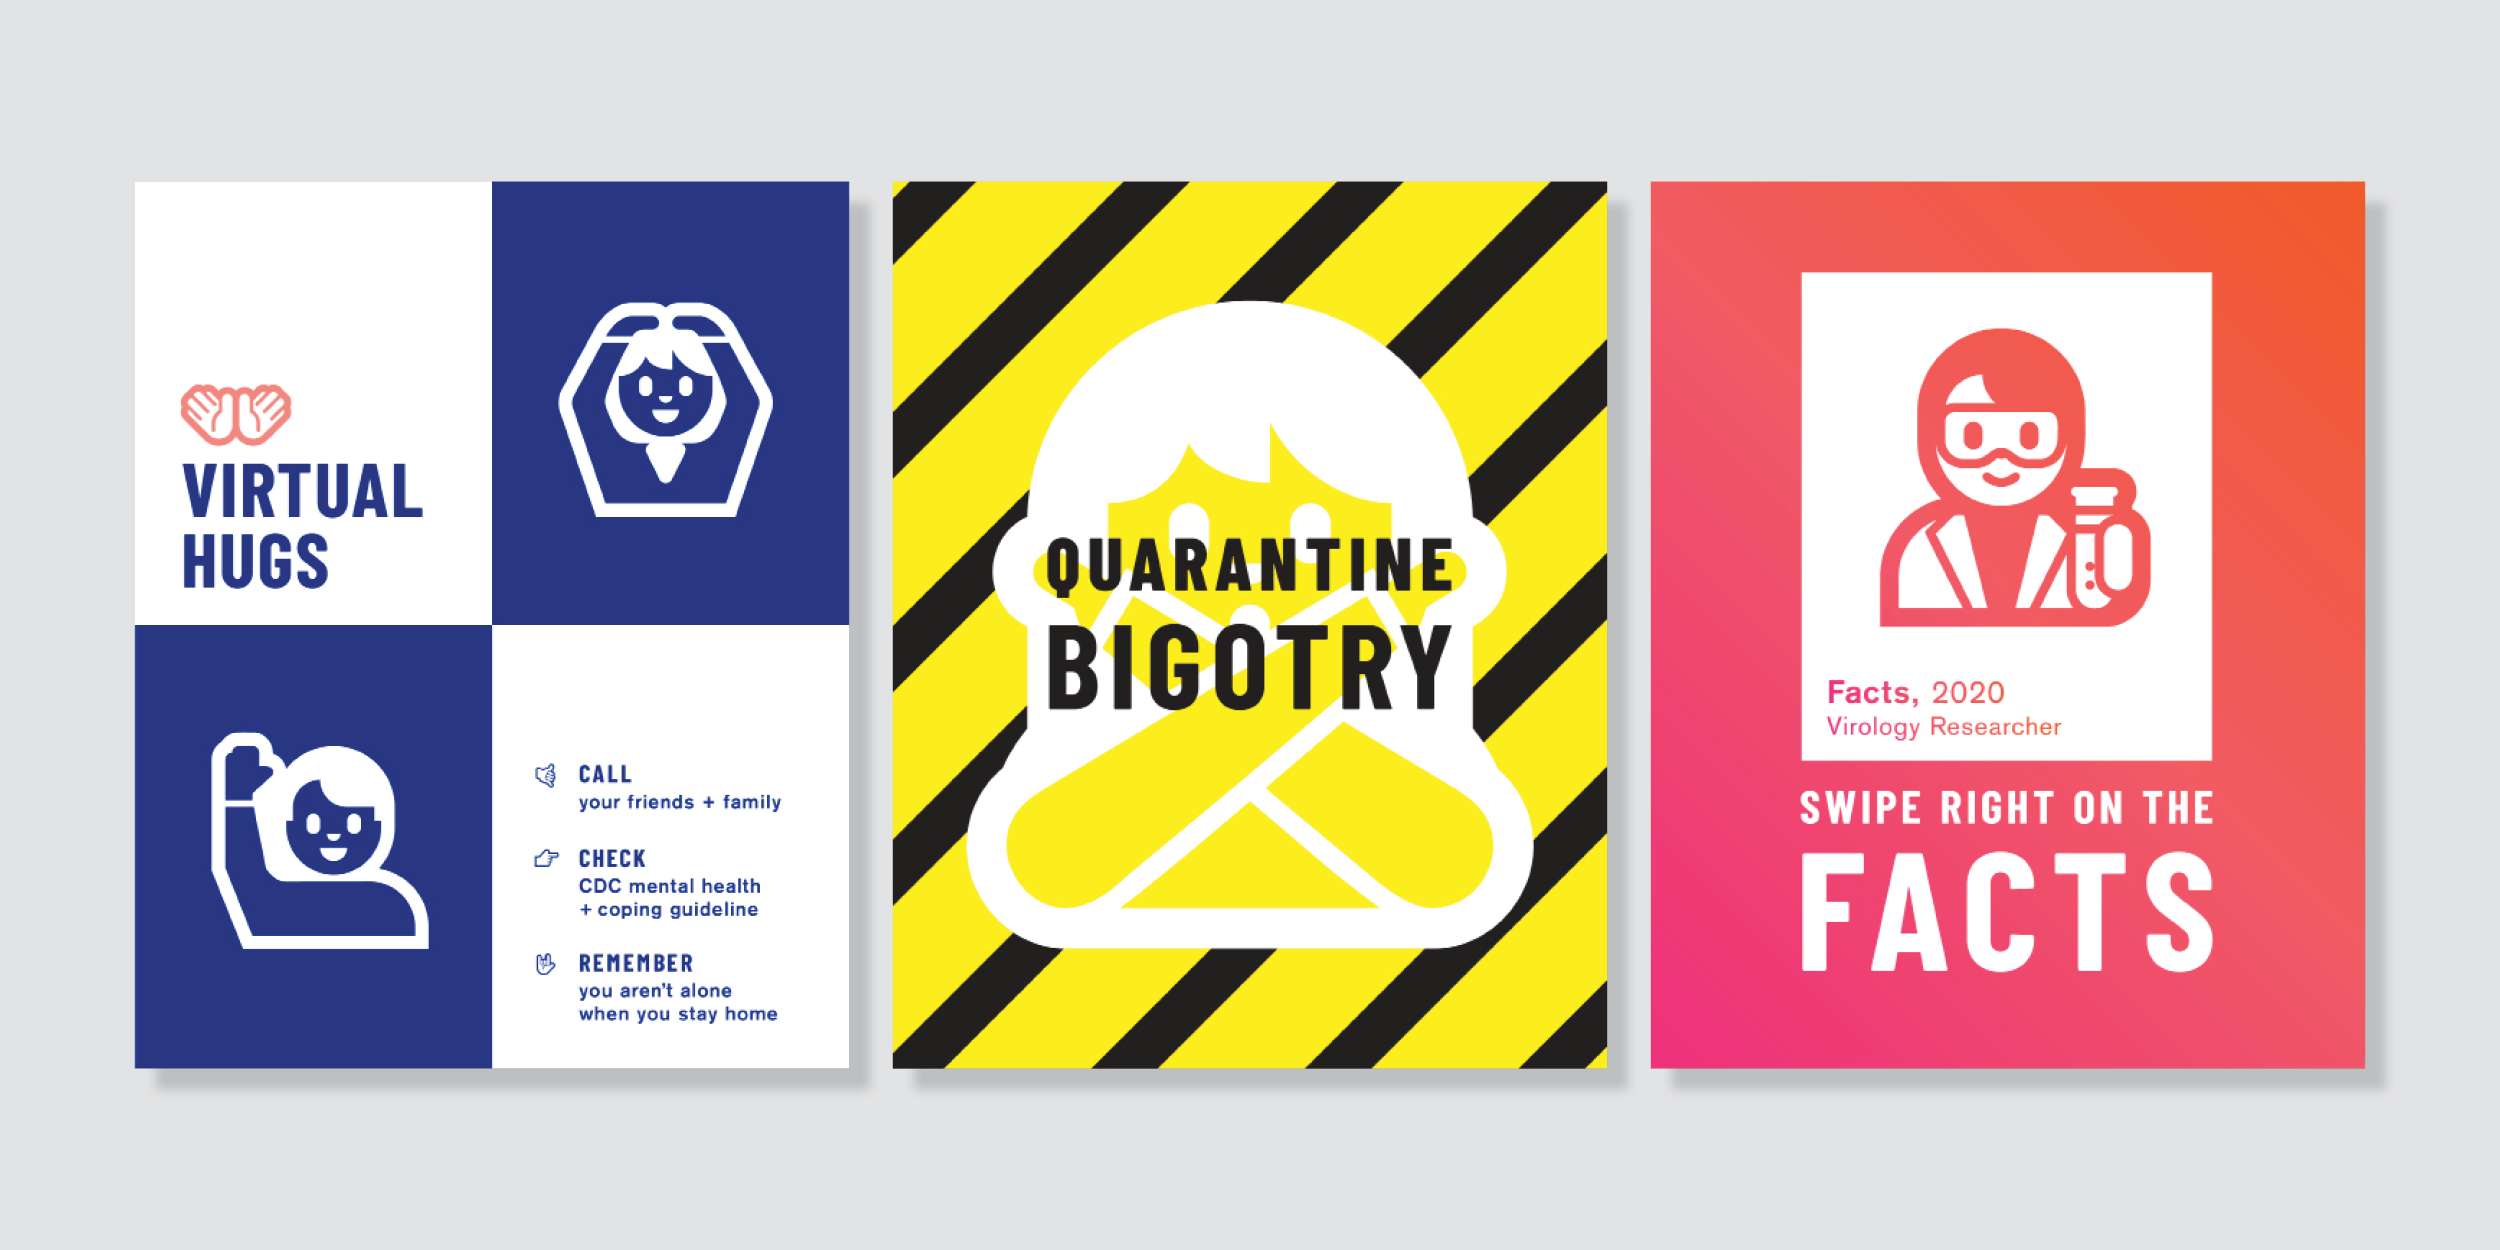 three graphic PSA posters on combating Covid side by side